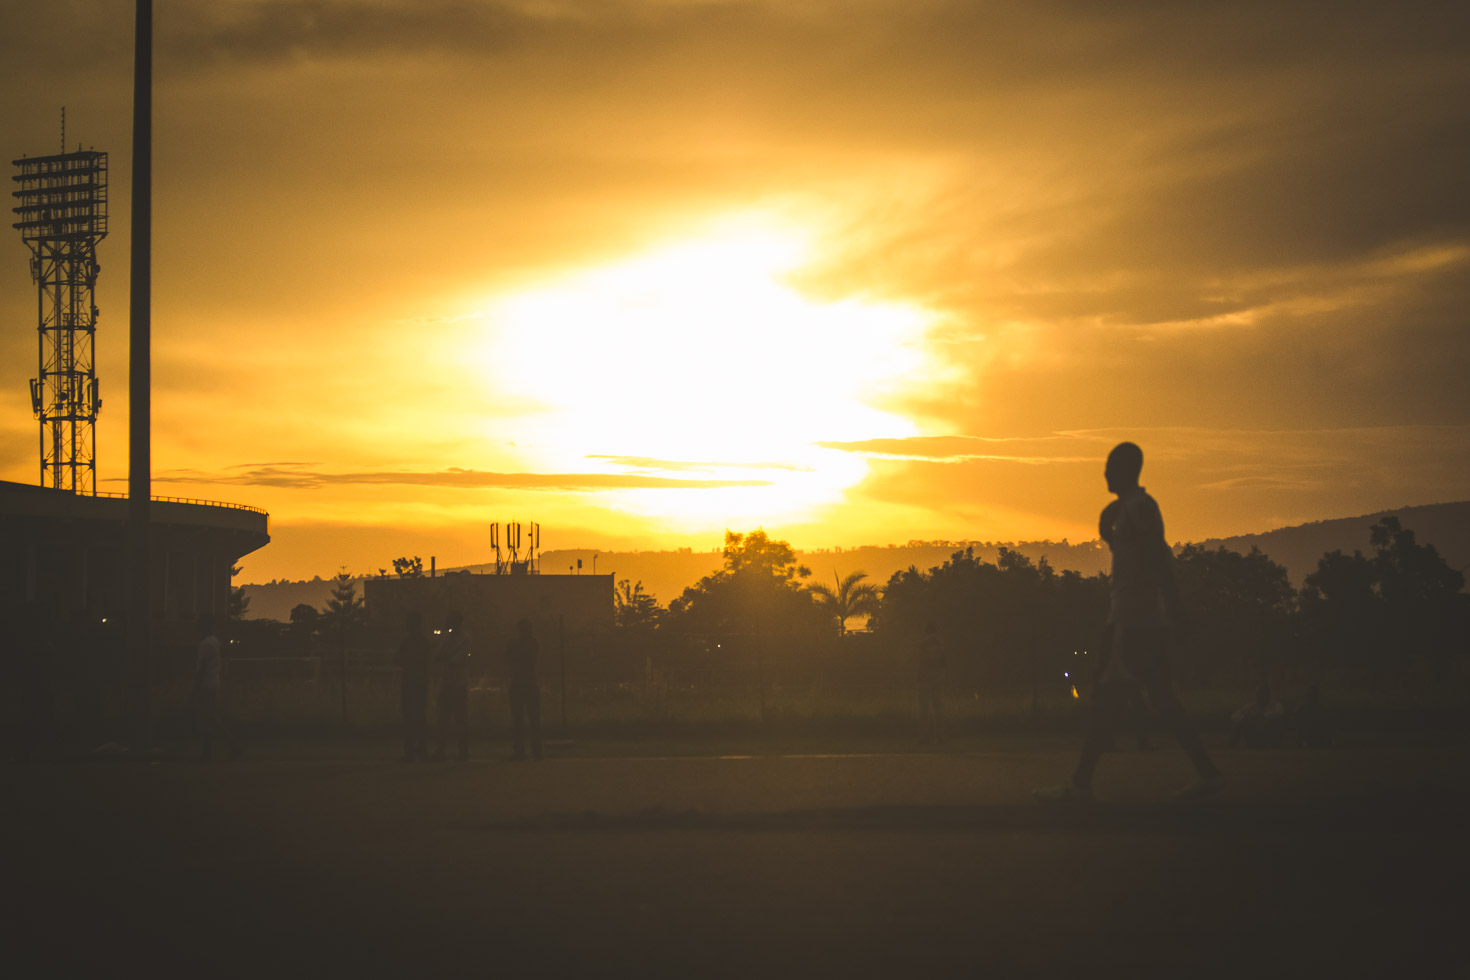 Soccer goalie walking the field with backlight silhouette of sun; Africa, Powerful